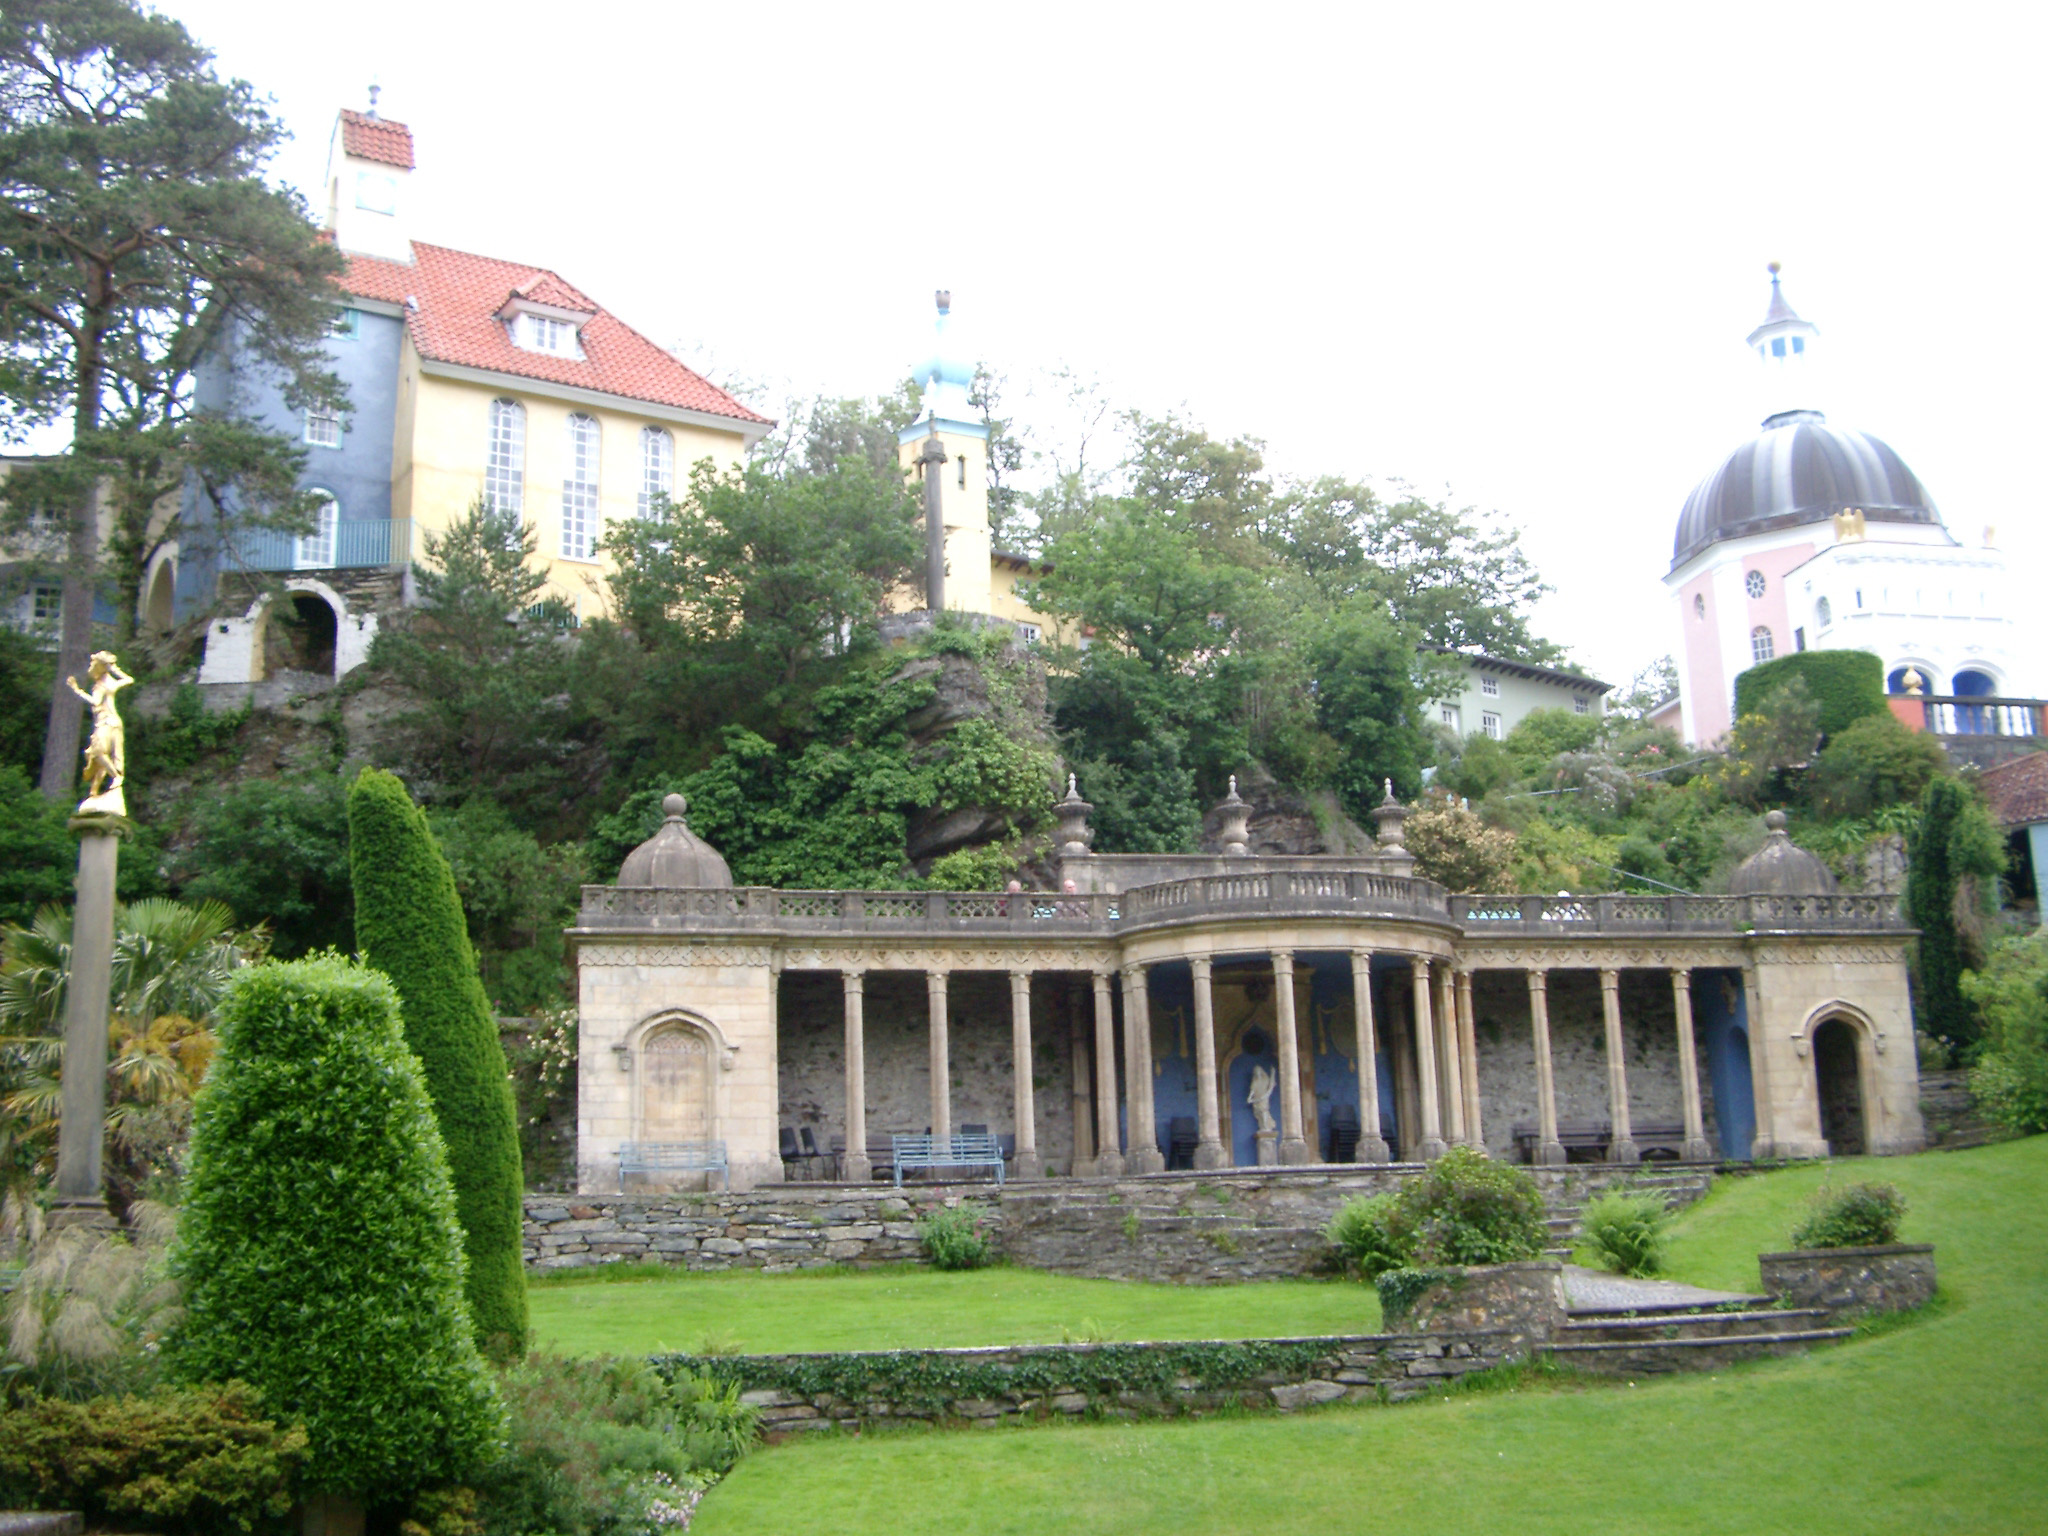 Portmeirion architecture, Wales, modeled on an Italian village , showing a building with a colonnade portico overlooking landscaped gardens in this popular tourist resort